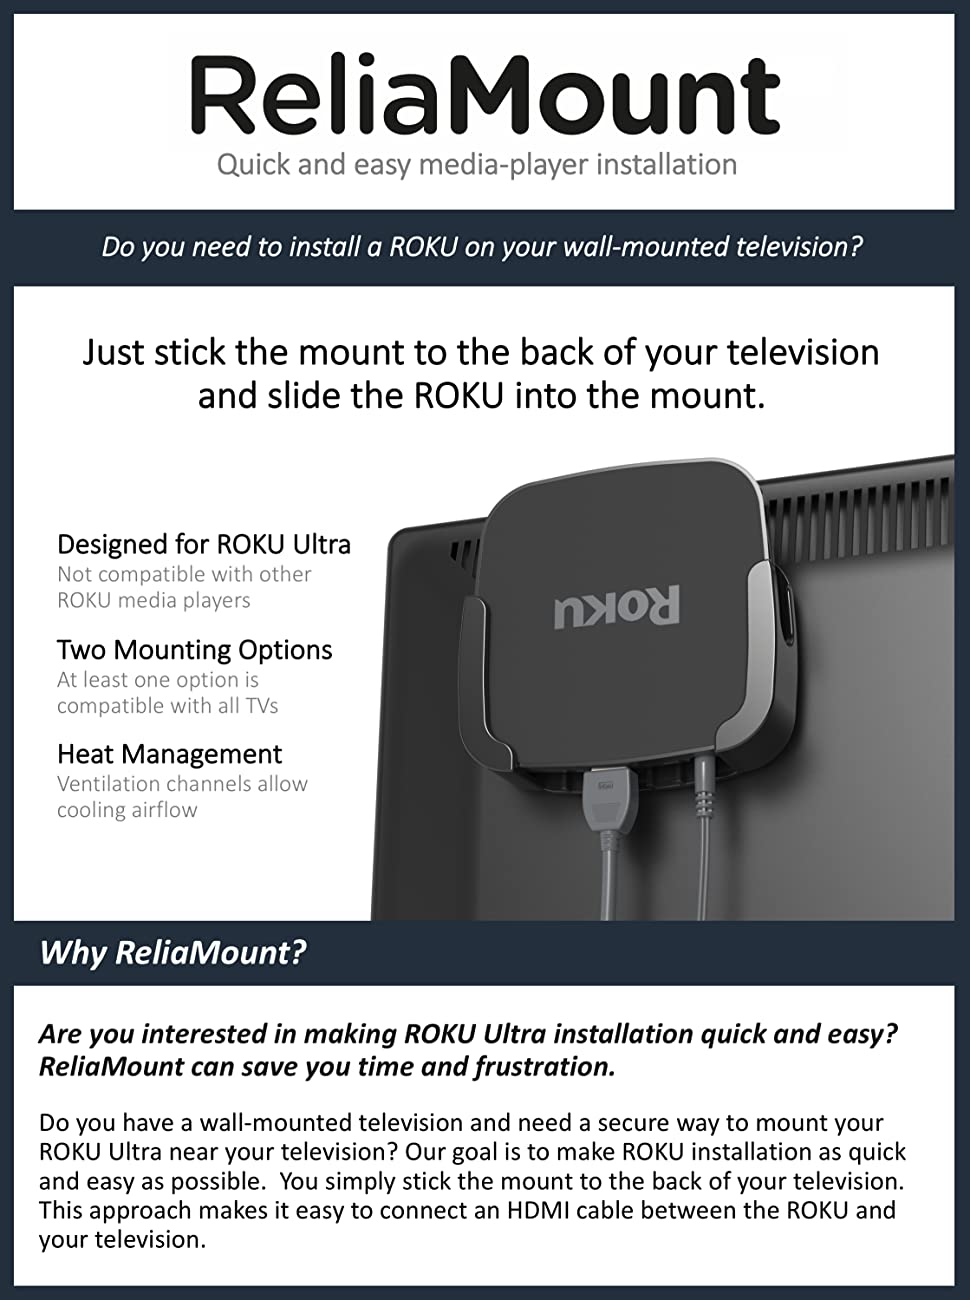 Amazon.com: ReliaMount Roku Ultra Mount: Computers & Accessories